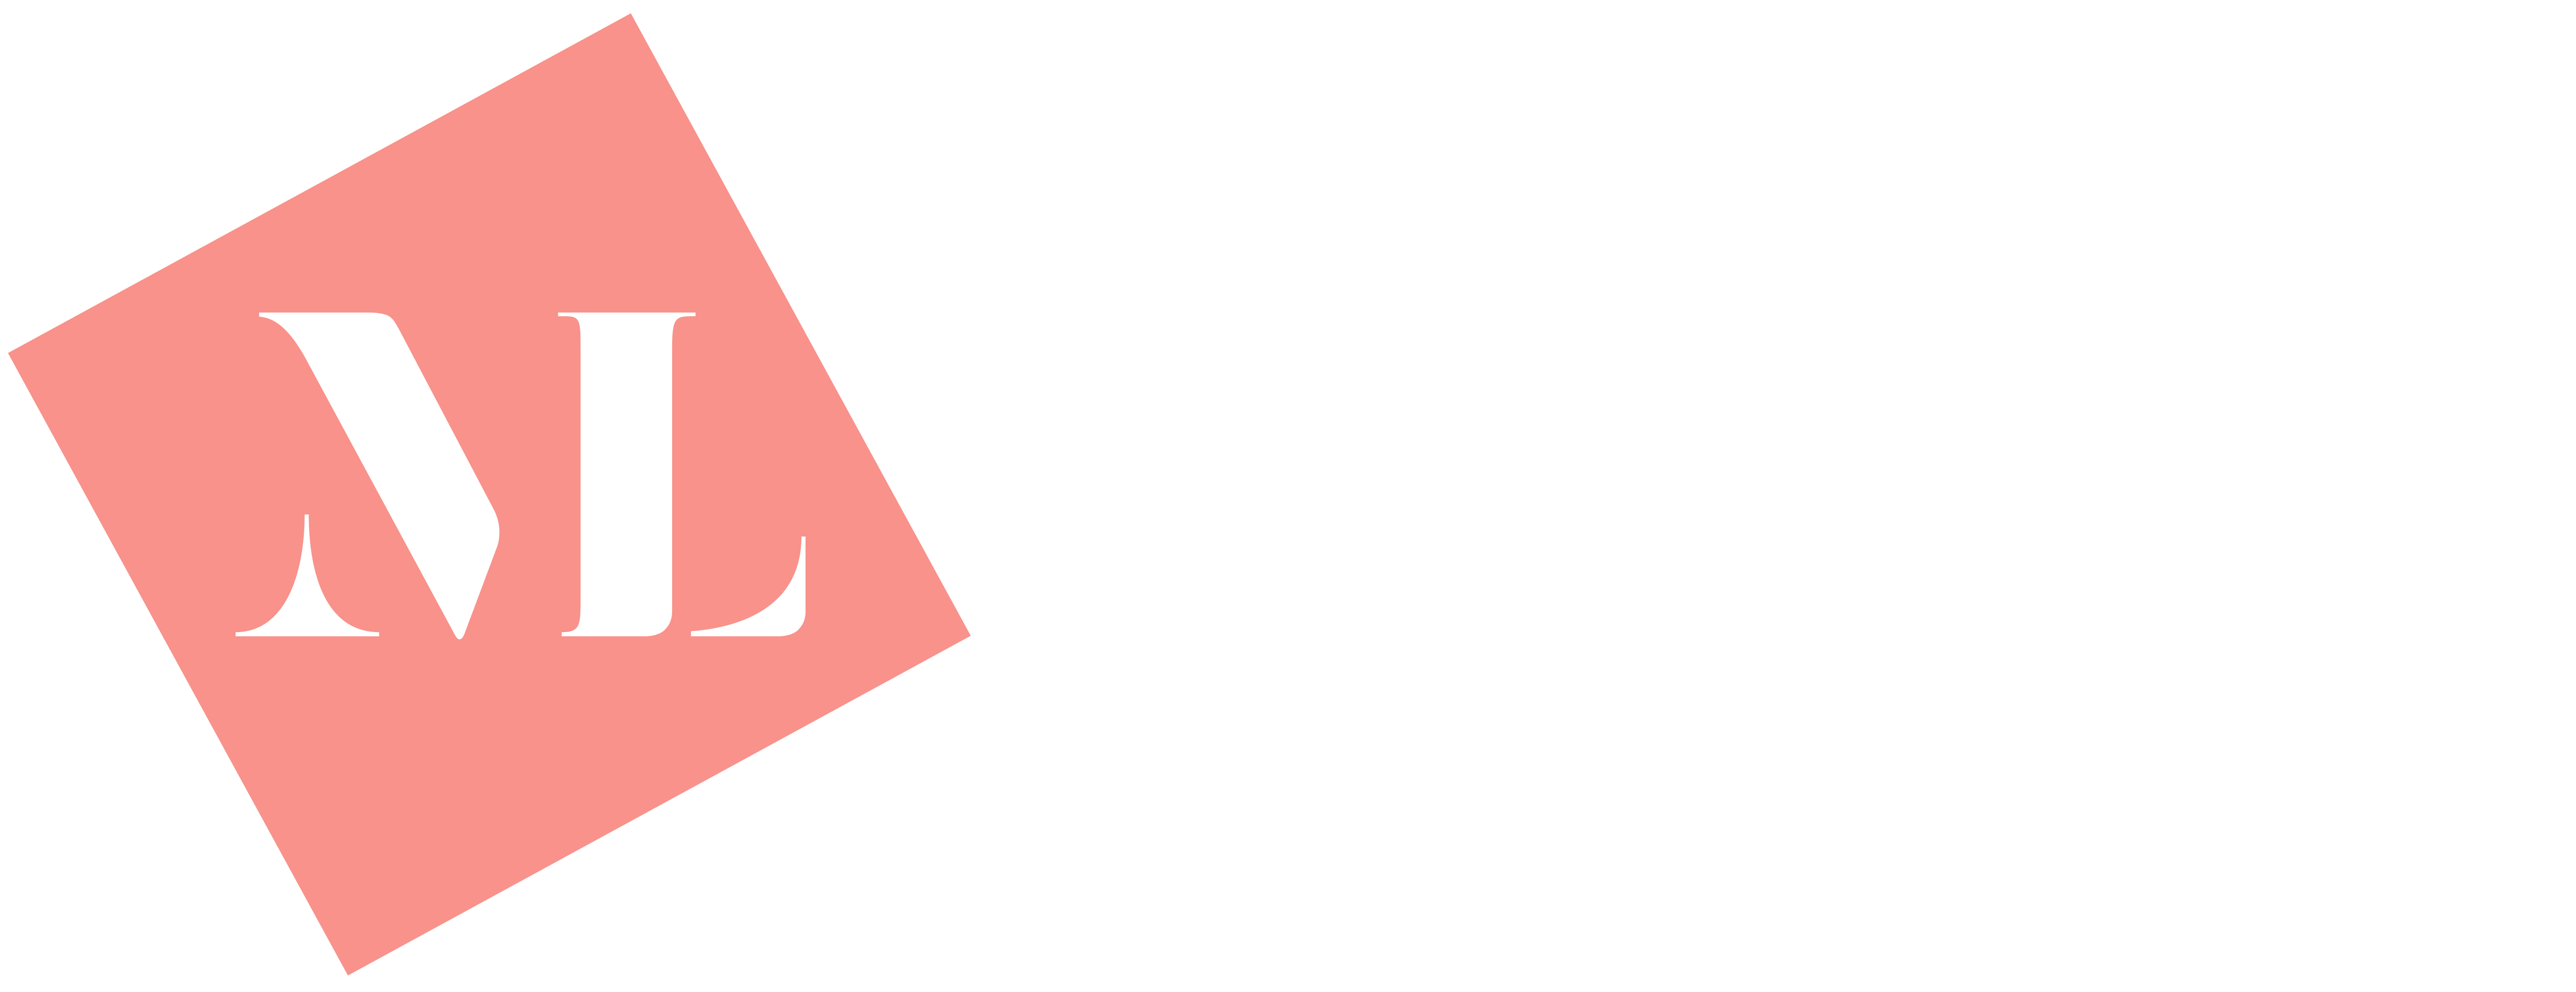 Marshall Light Studio logo – Home